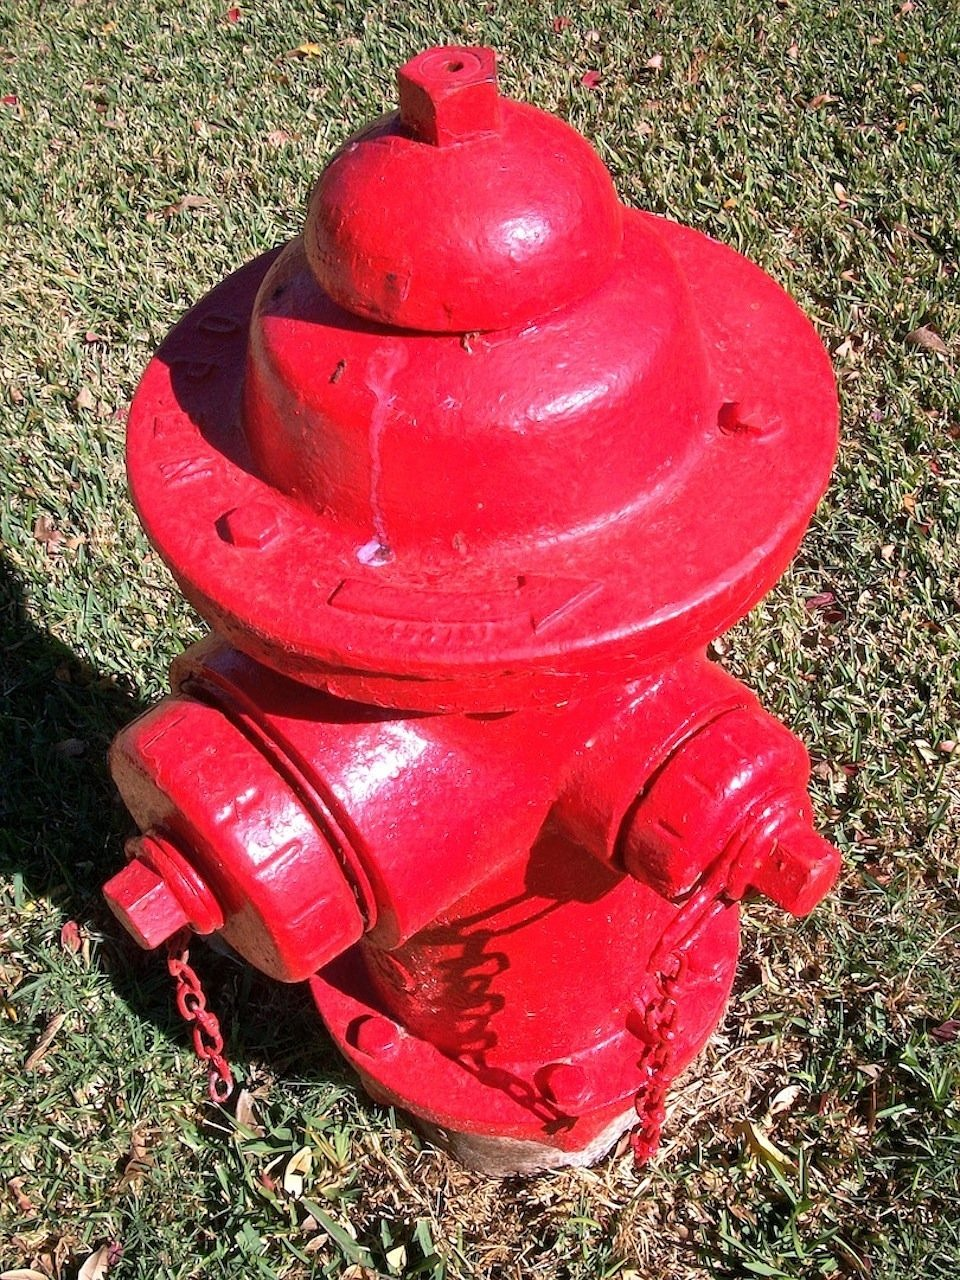 hydrant,fire,red,water,emergency,firefighting,pressure,valve,free pictures, free photos, free images, royalty free, free illustrations, public domain